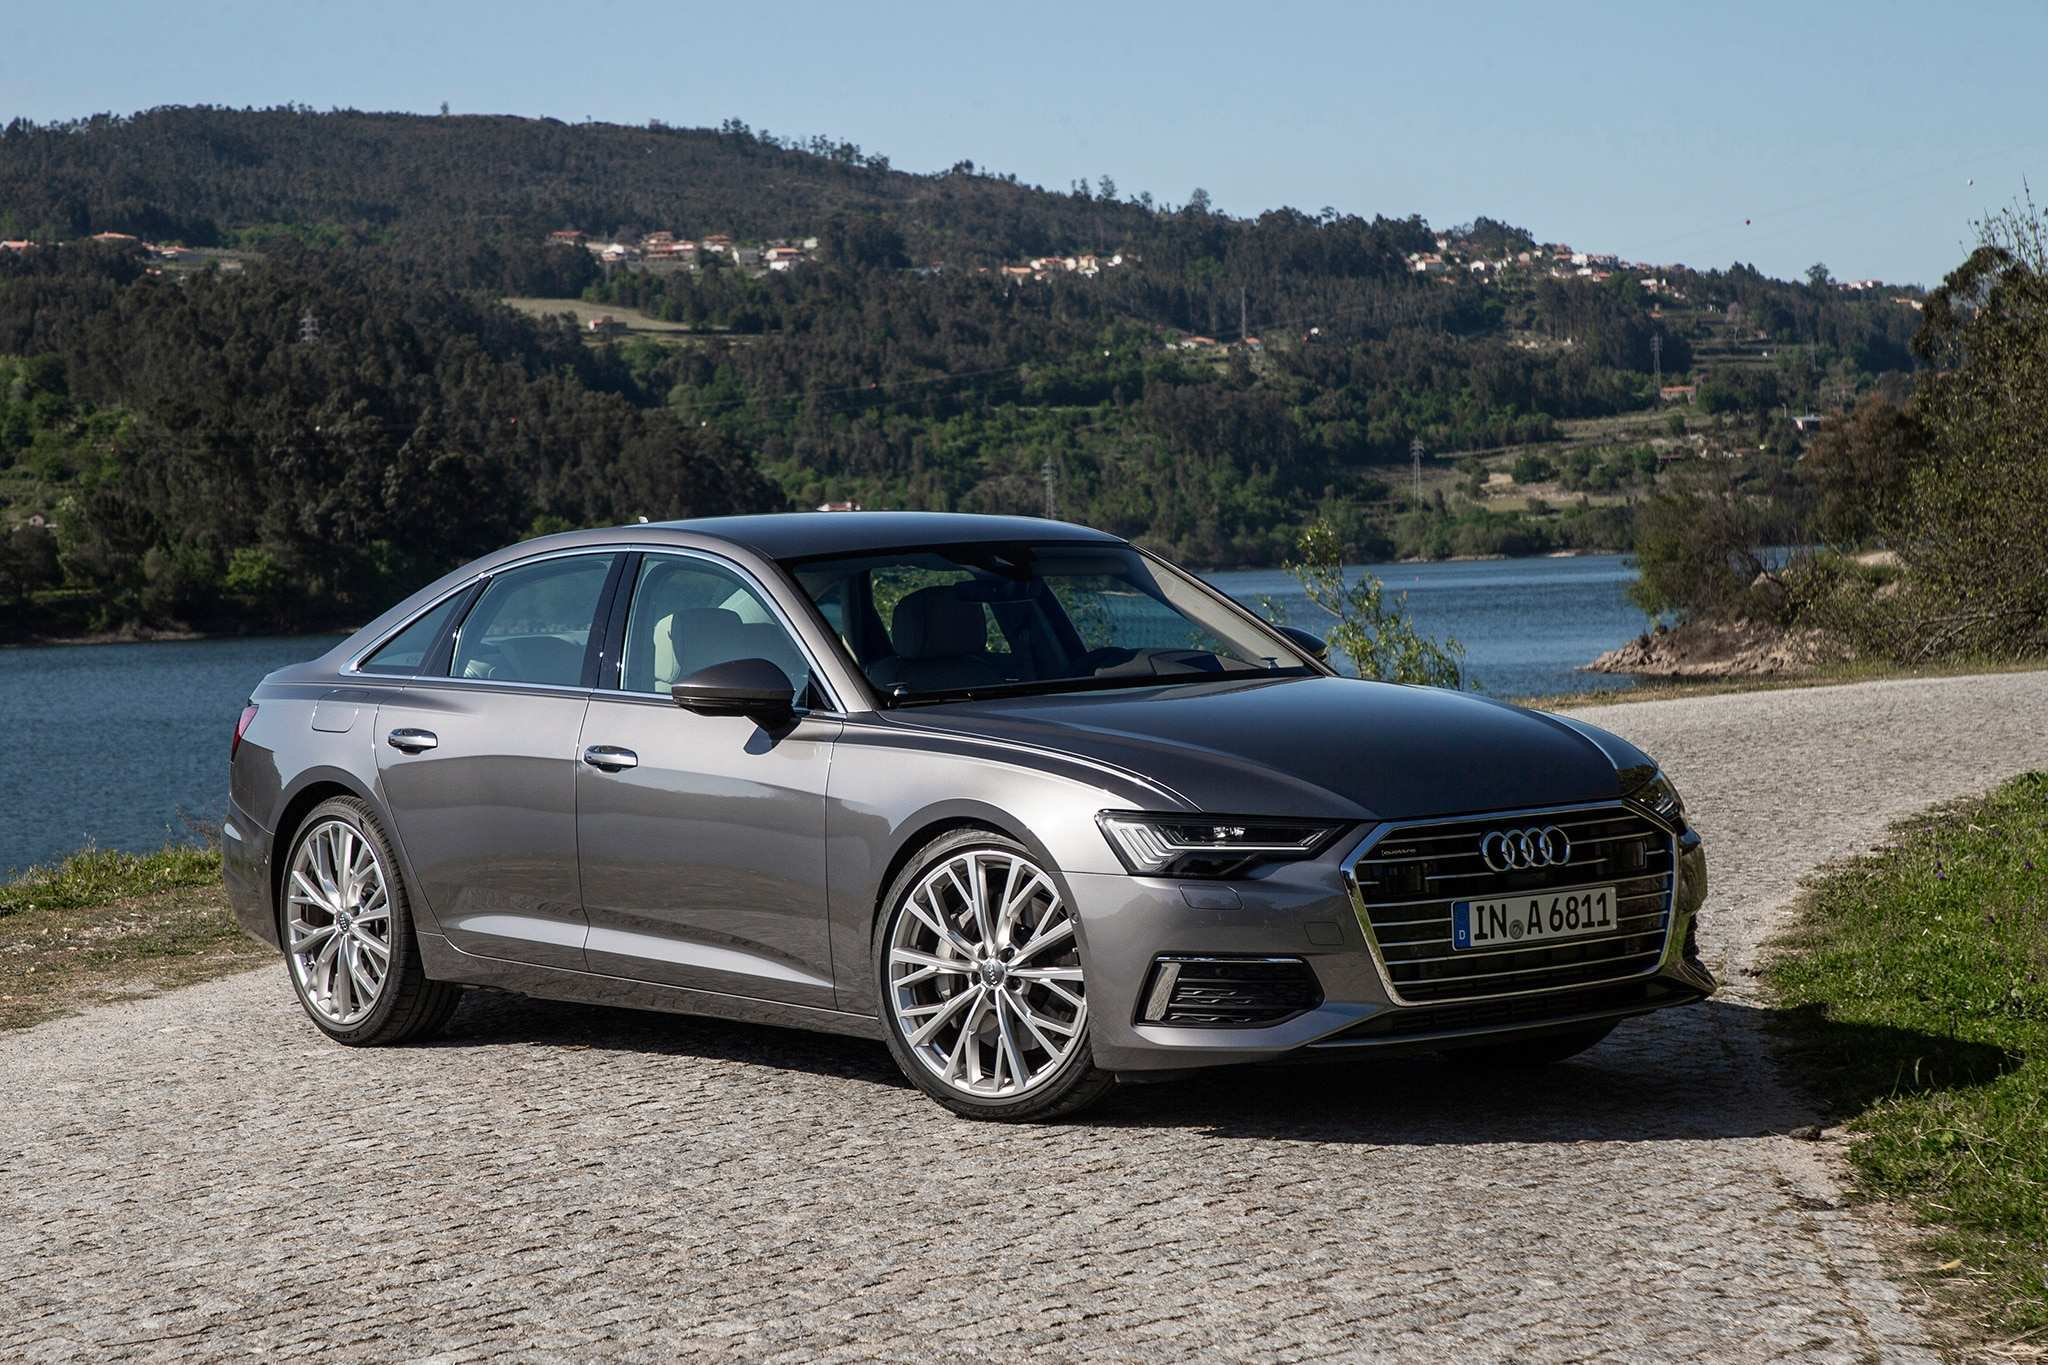 48 New 2019 Audi A6 Specs Interior by 2019 Audi A6 Specs